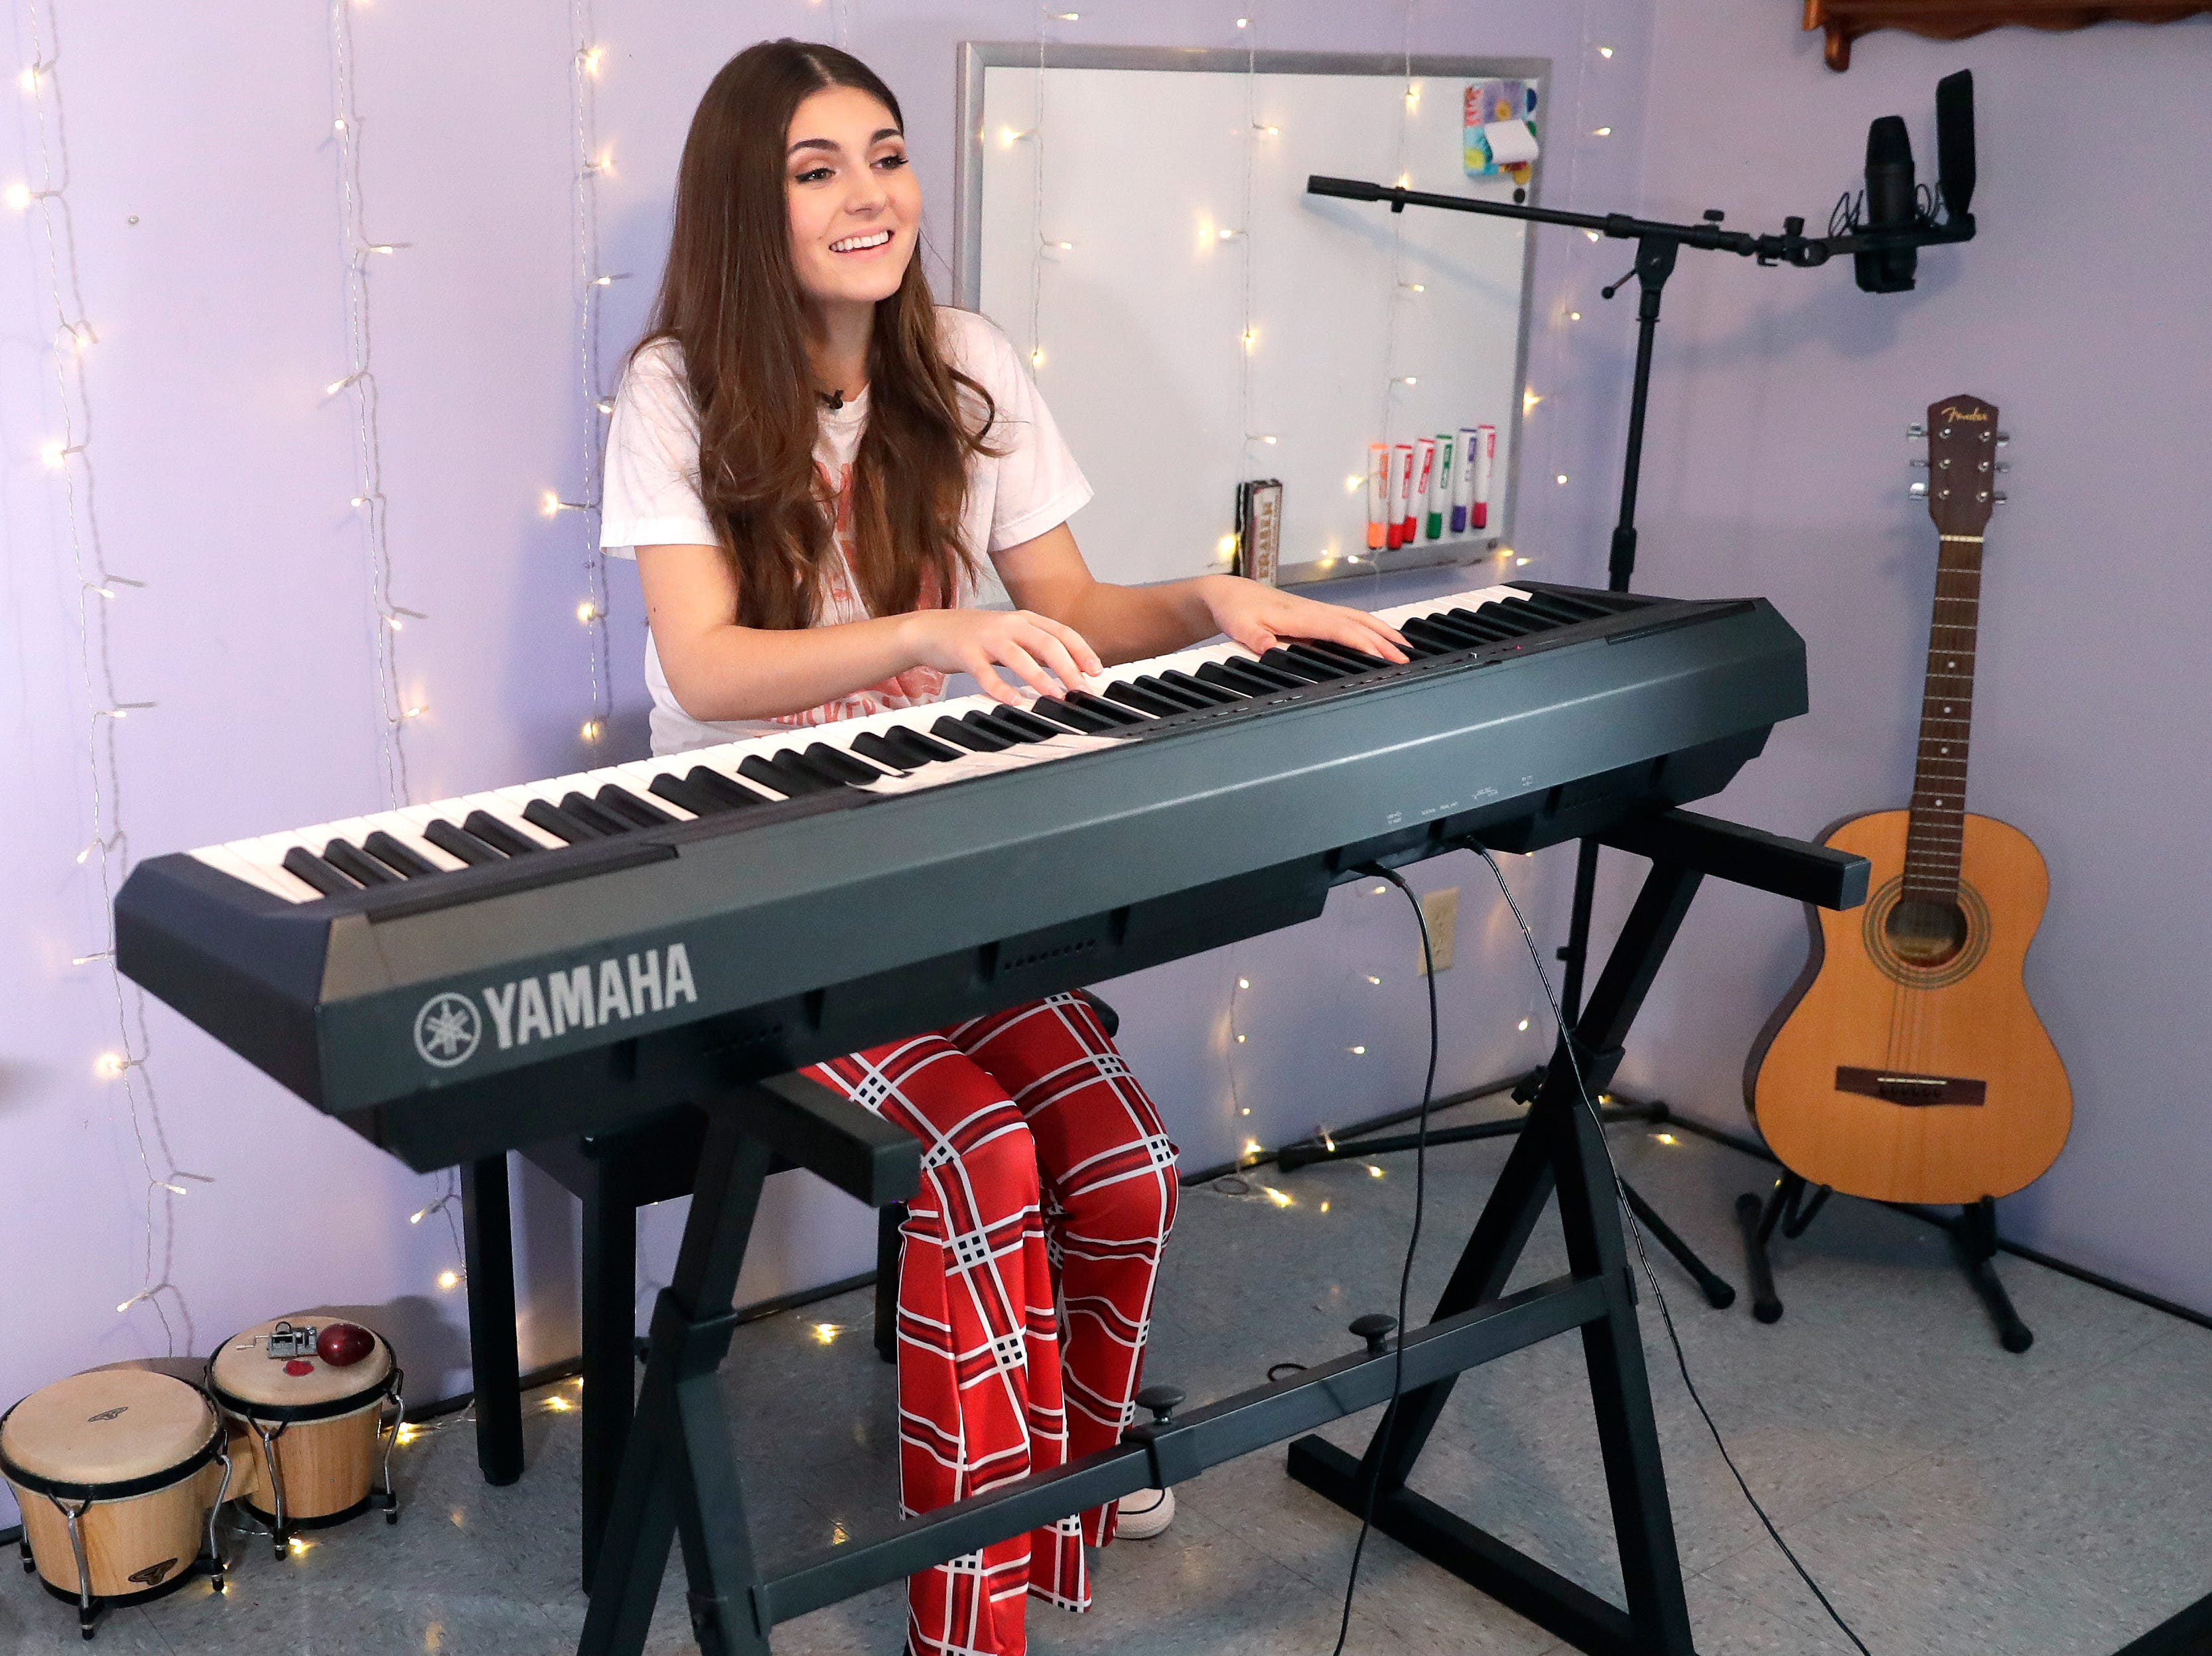 Franki Moscato, a 17-year-old singer/songwriter, plays piano in her room on Feb. 28, 2019, at her family's home in Oshkosh, Wis.